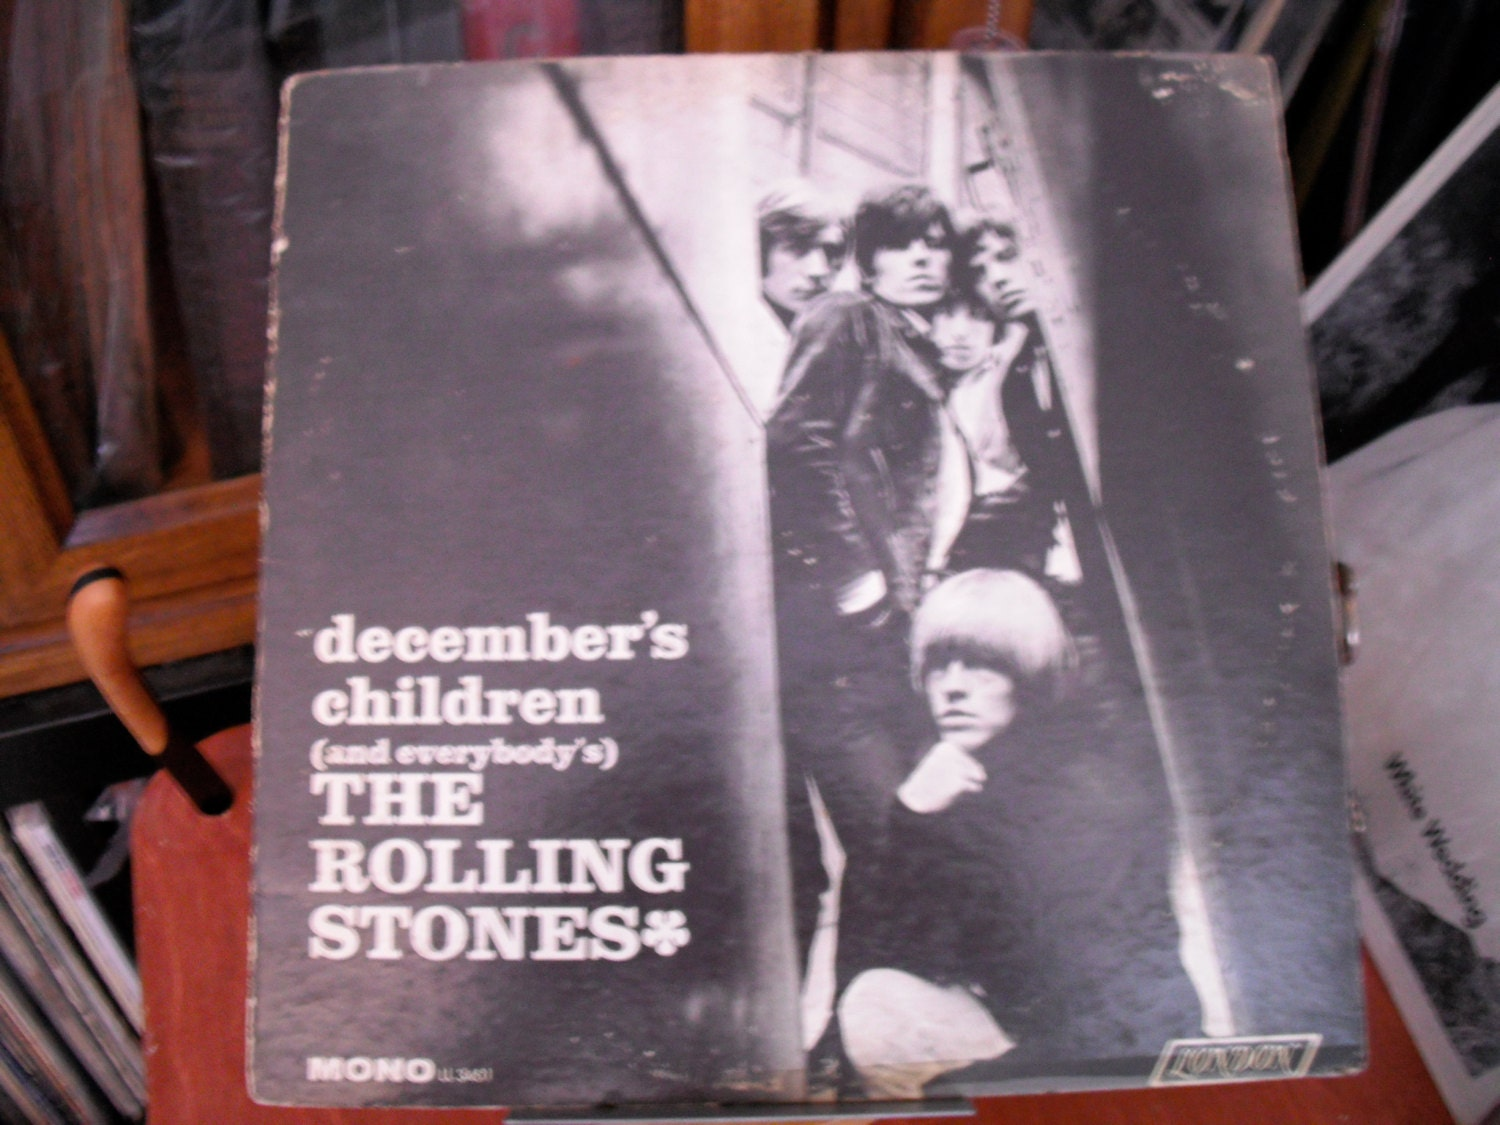 The Rolling Stones Mono Decembers Children And Everybodys 1965